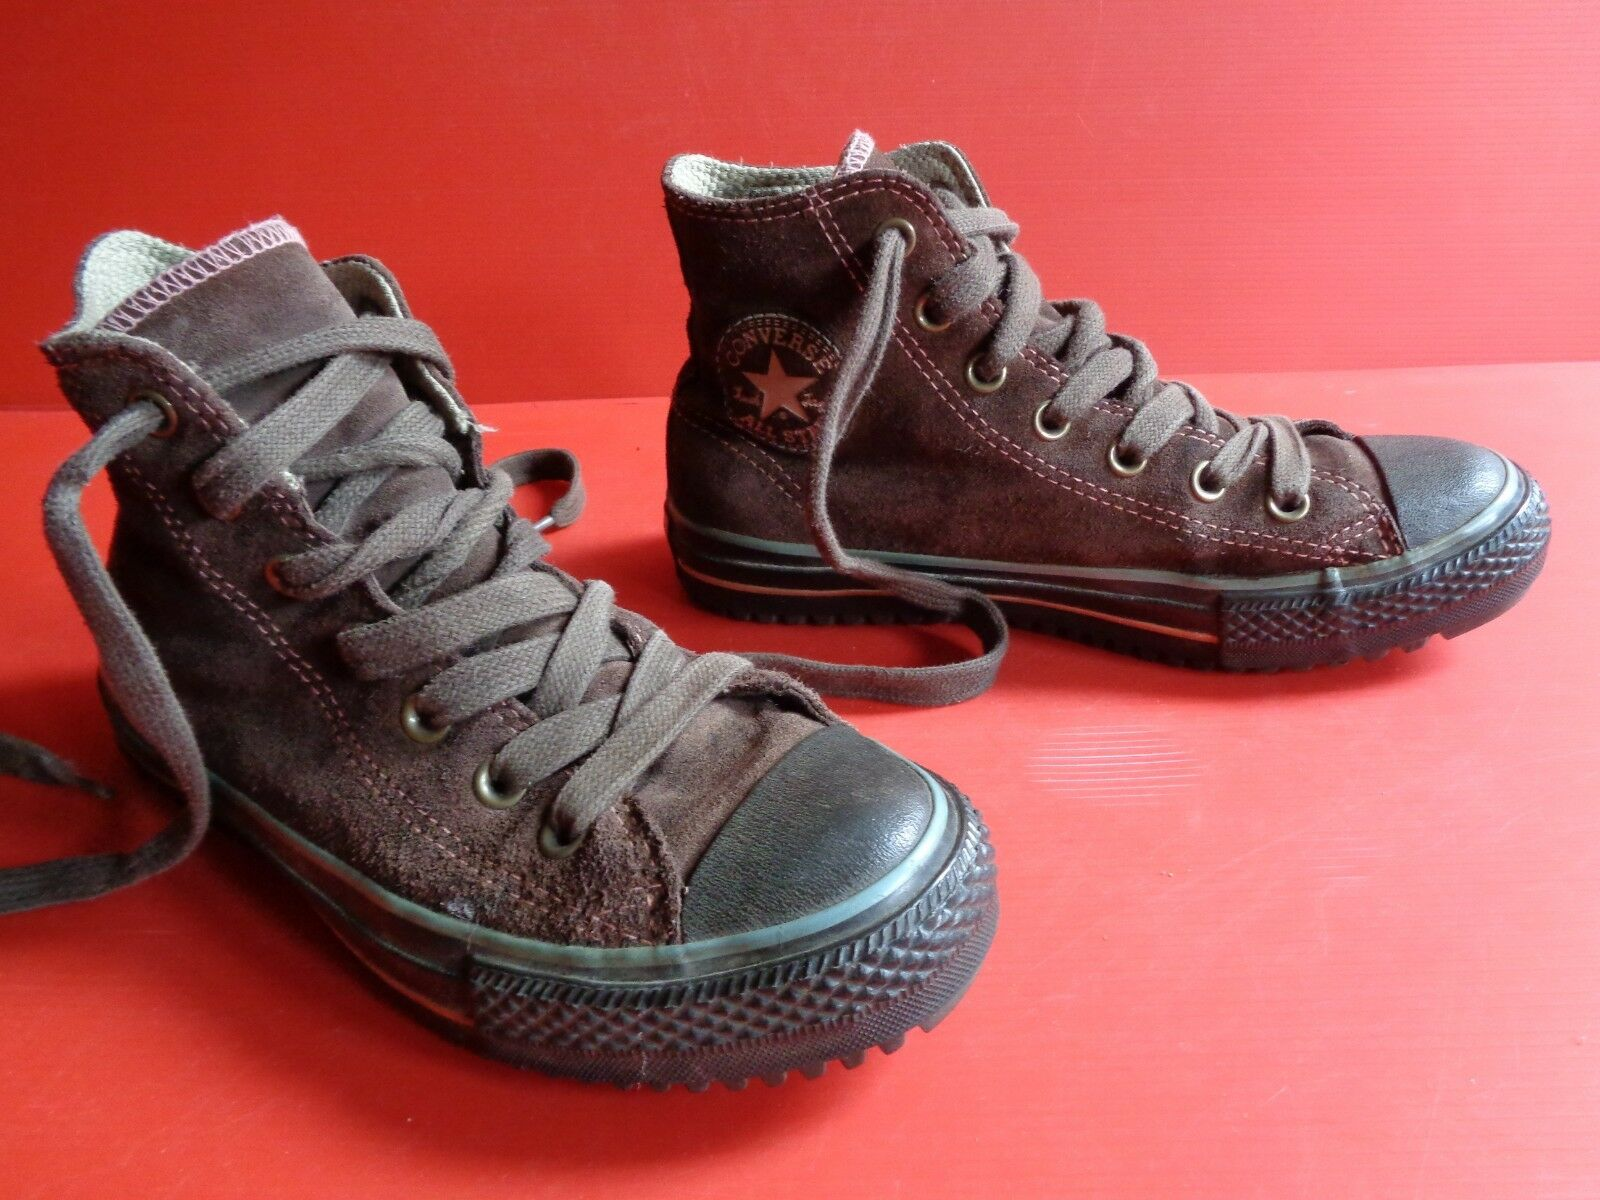 Converse Chucks All Star Wildleder Nr.15 braun Gr.37 (4½) Nr.15 Wildleder unisex 7cf2bb